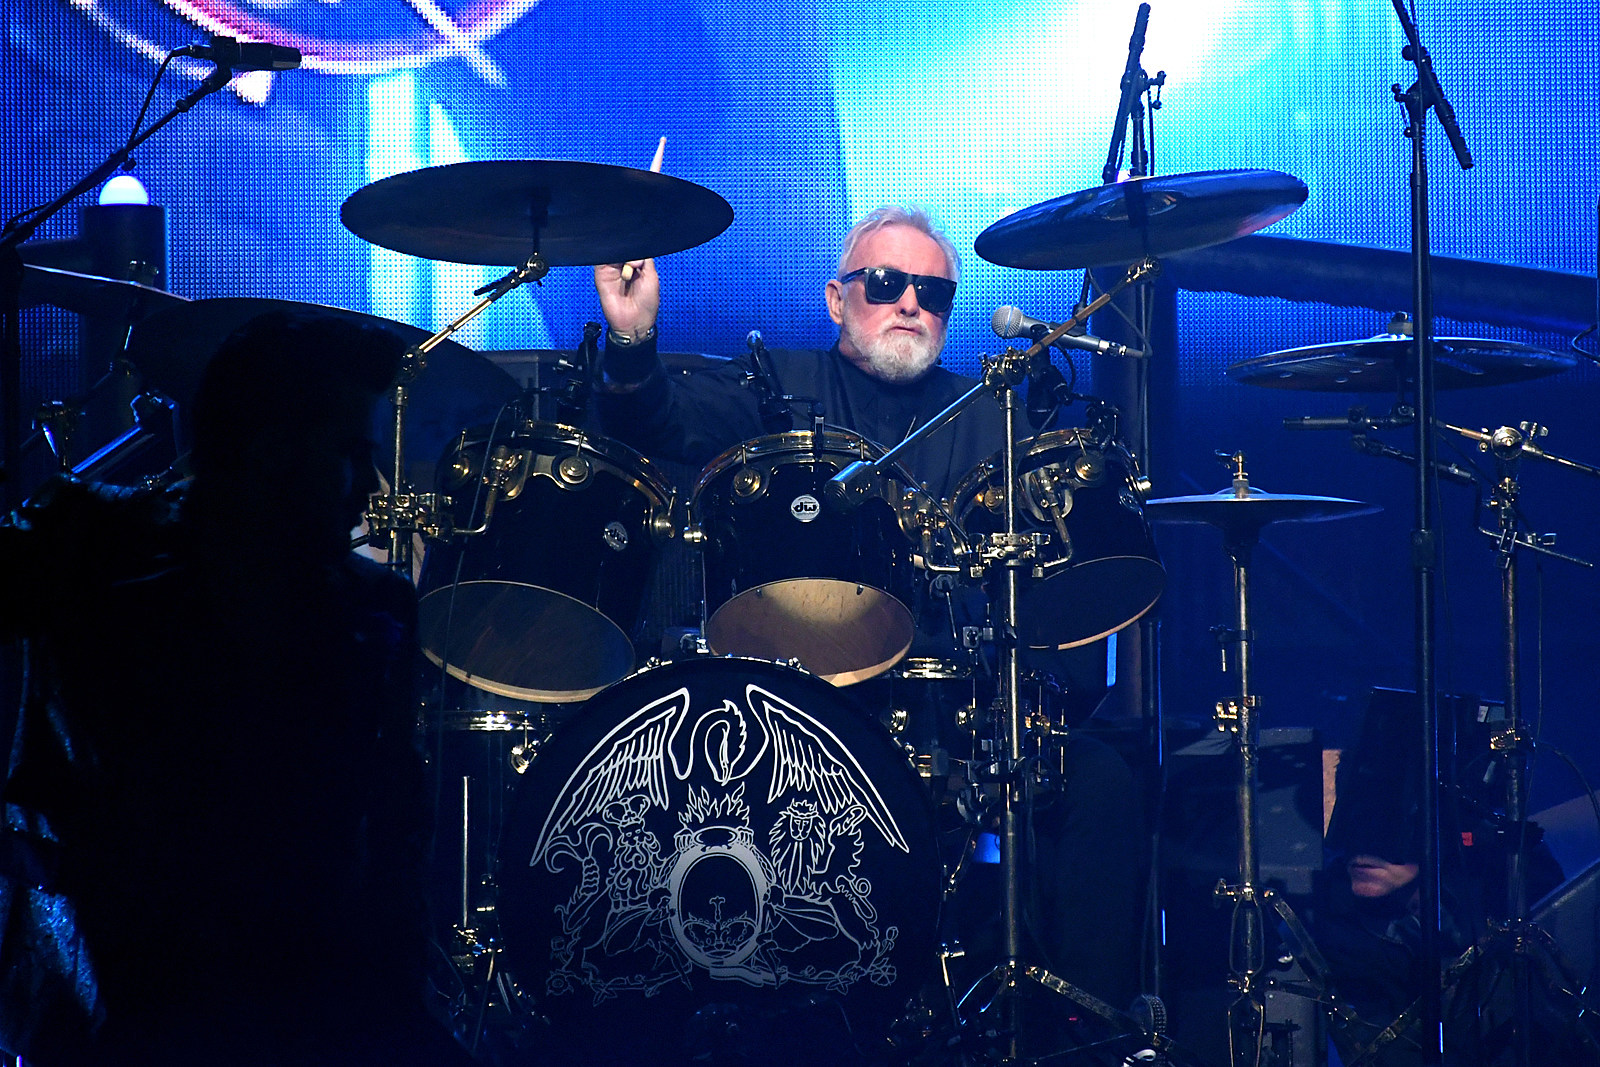 Queen's Roger Taylor Says Band Has 'Big Tour' Plans for 2022